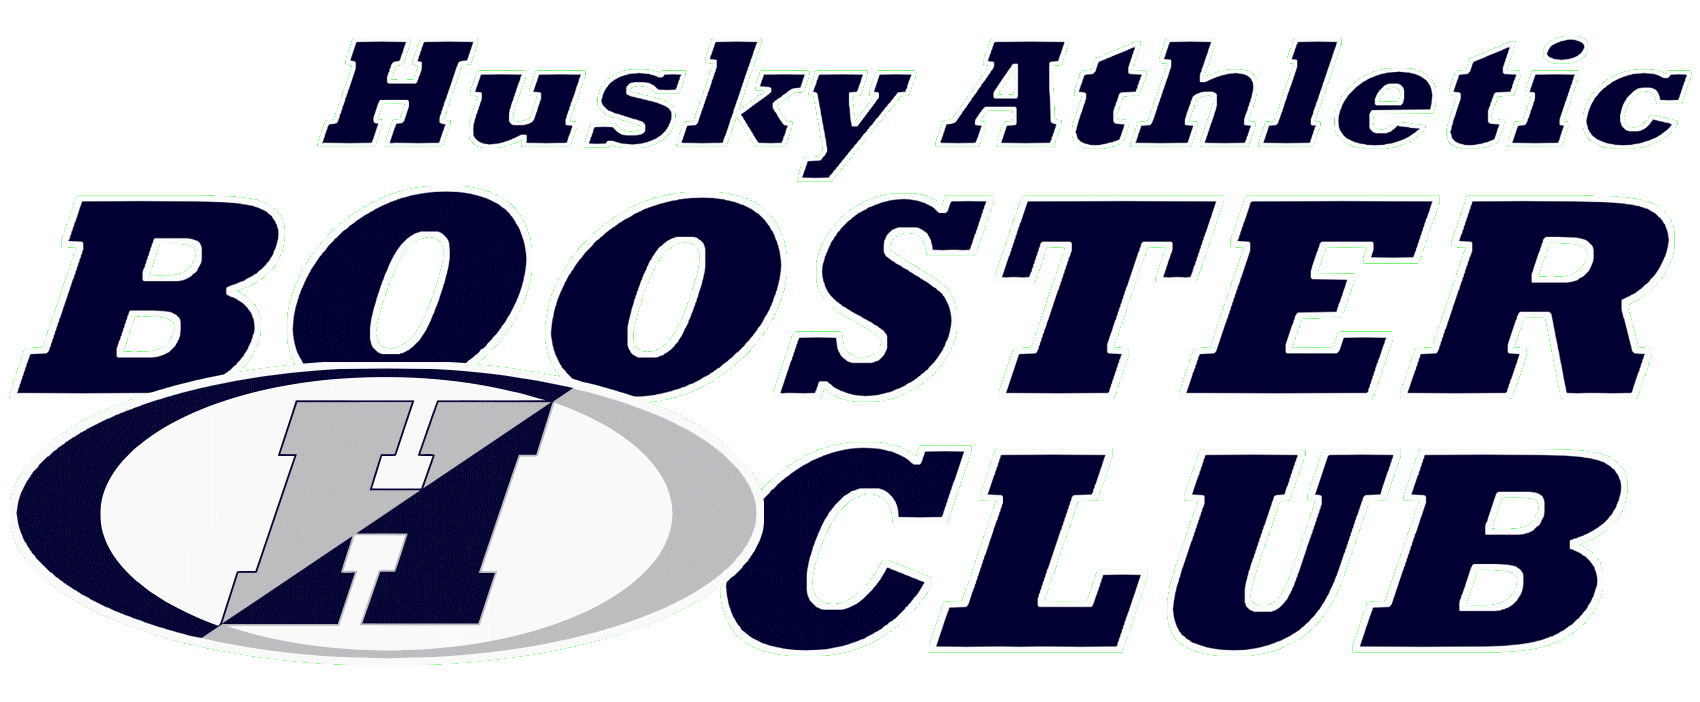 Husky Athletics Booster Club Logo